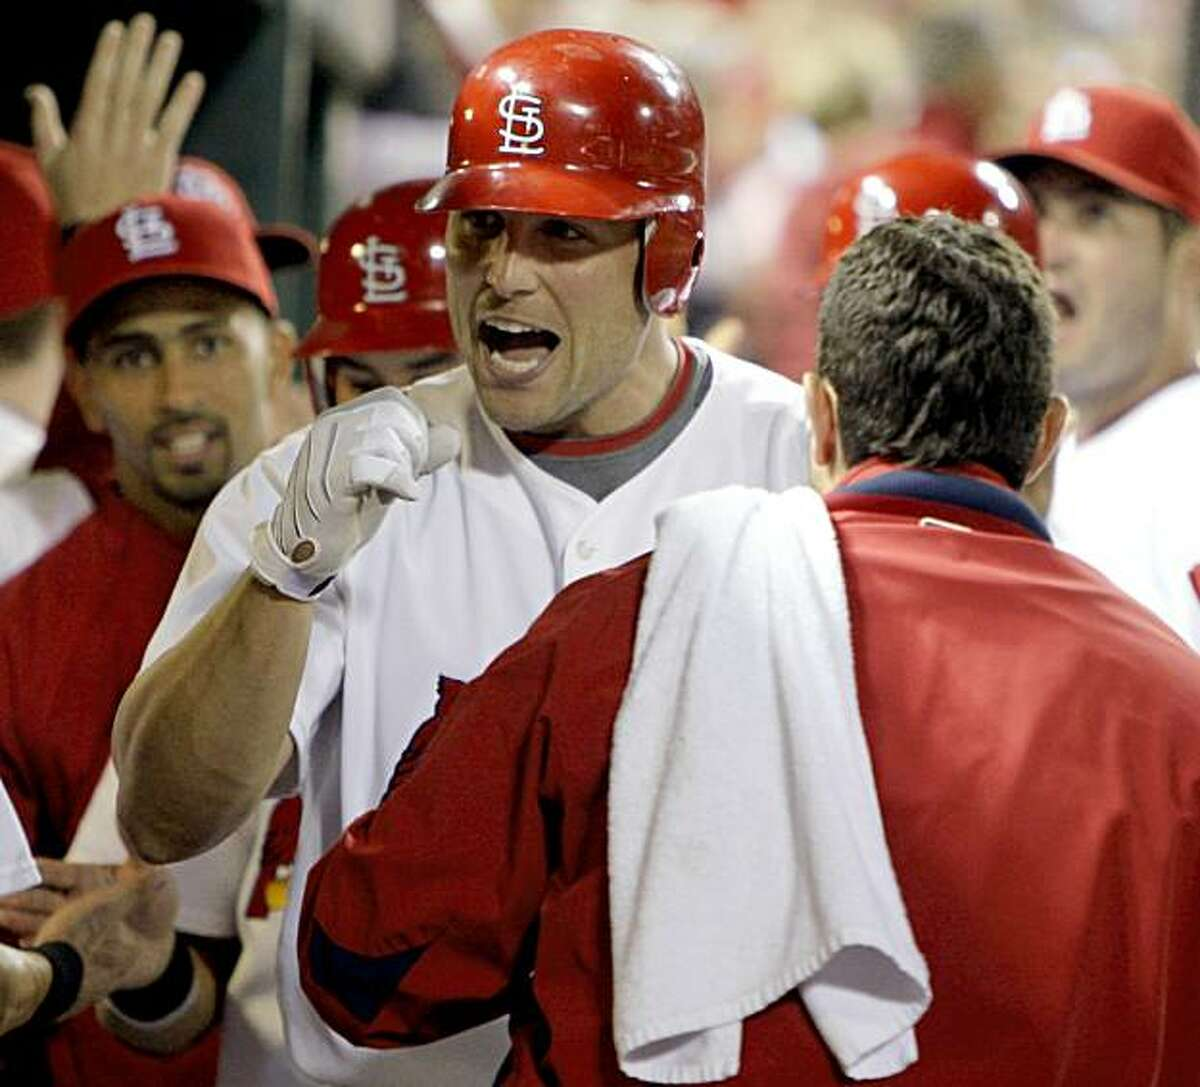 St. Louis Cardinals' Matt Holliday celebrates is congratulated by teammates after he hit a three-run home run during the seventh inning of a baseball game against the Milwaukee Brewers on Tuesday, Sept. 1, 2009, in St. Louis. (AP Photo/Jeff Roberson)